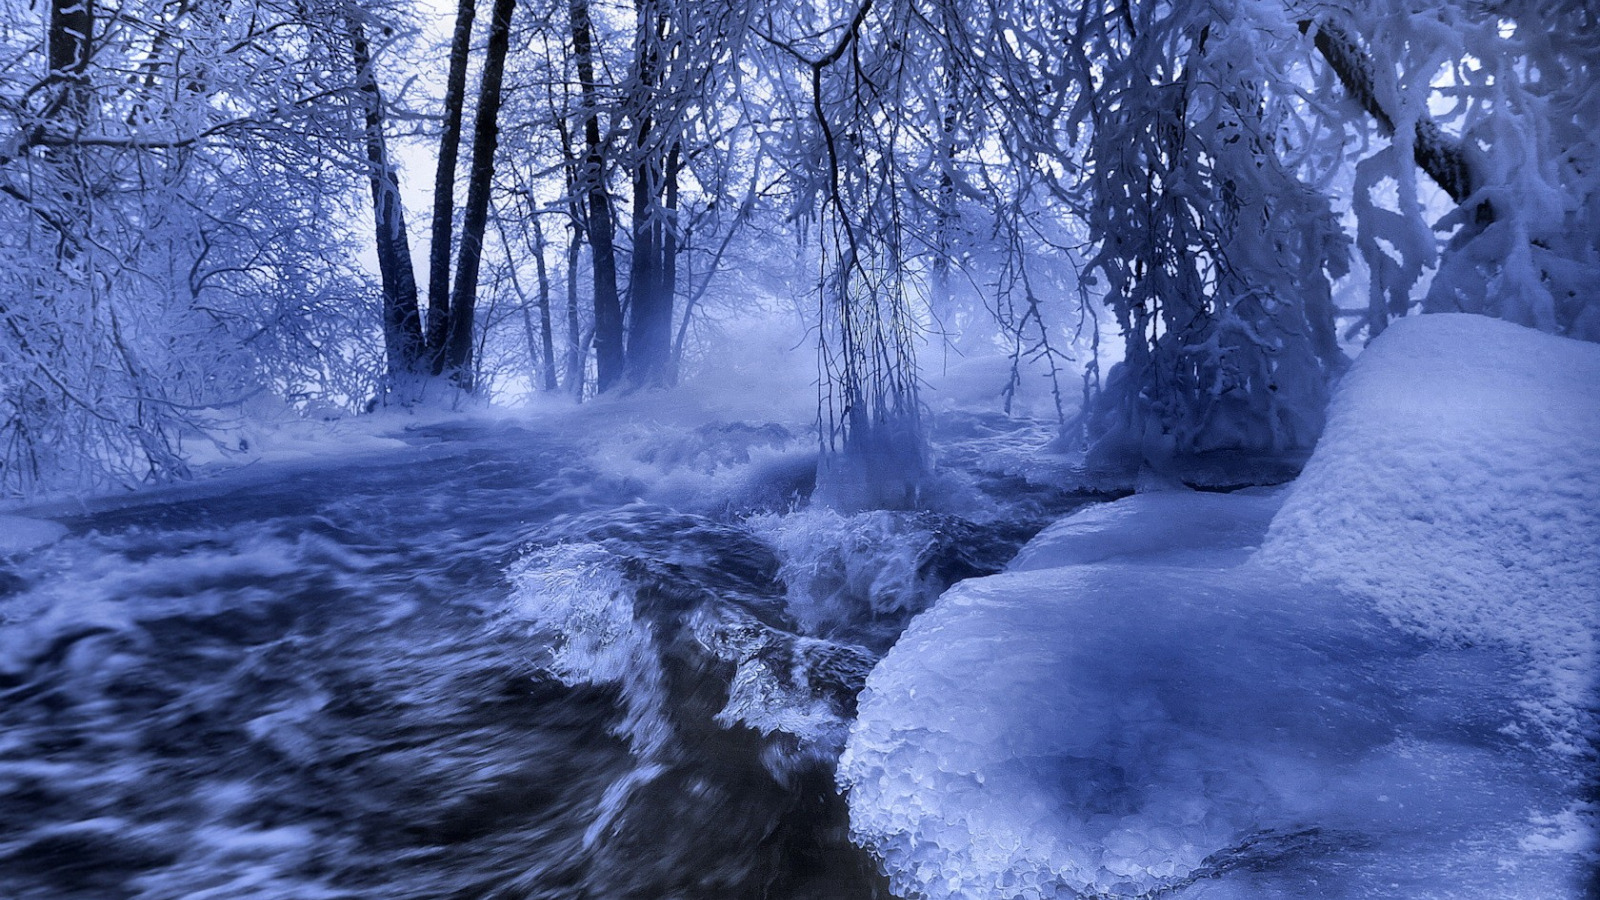 awesome nature wallpapers winter - photo #11